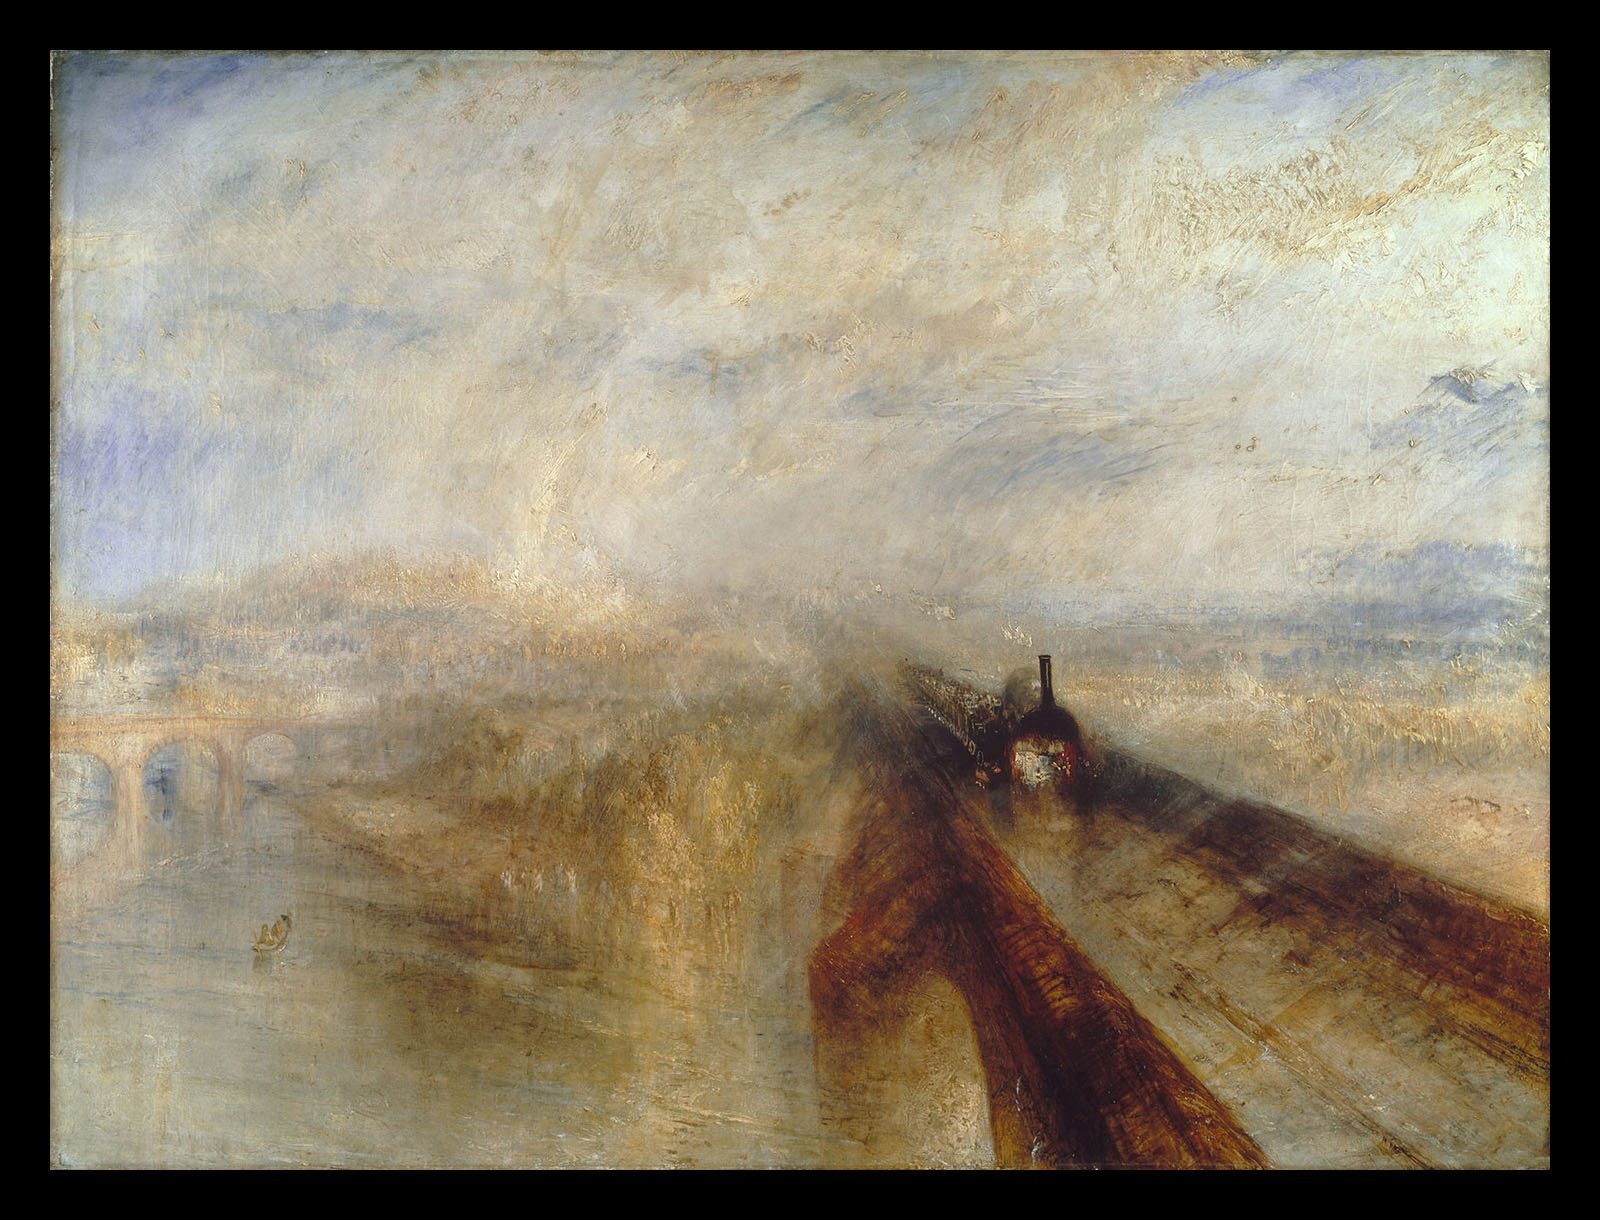 Joseph Turner 'Rain Steam and Speed' 1884